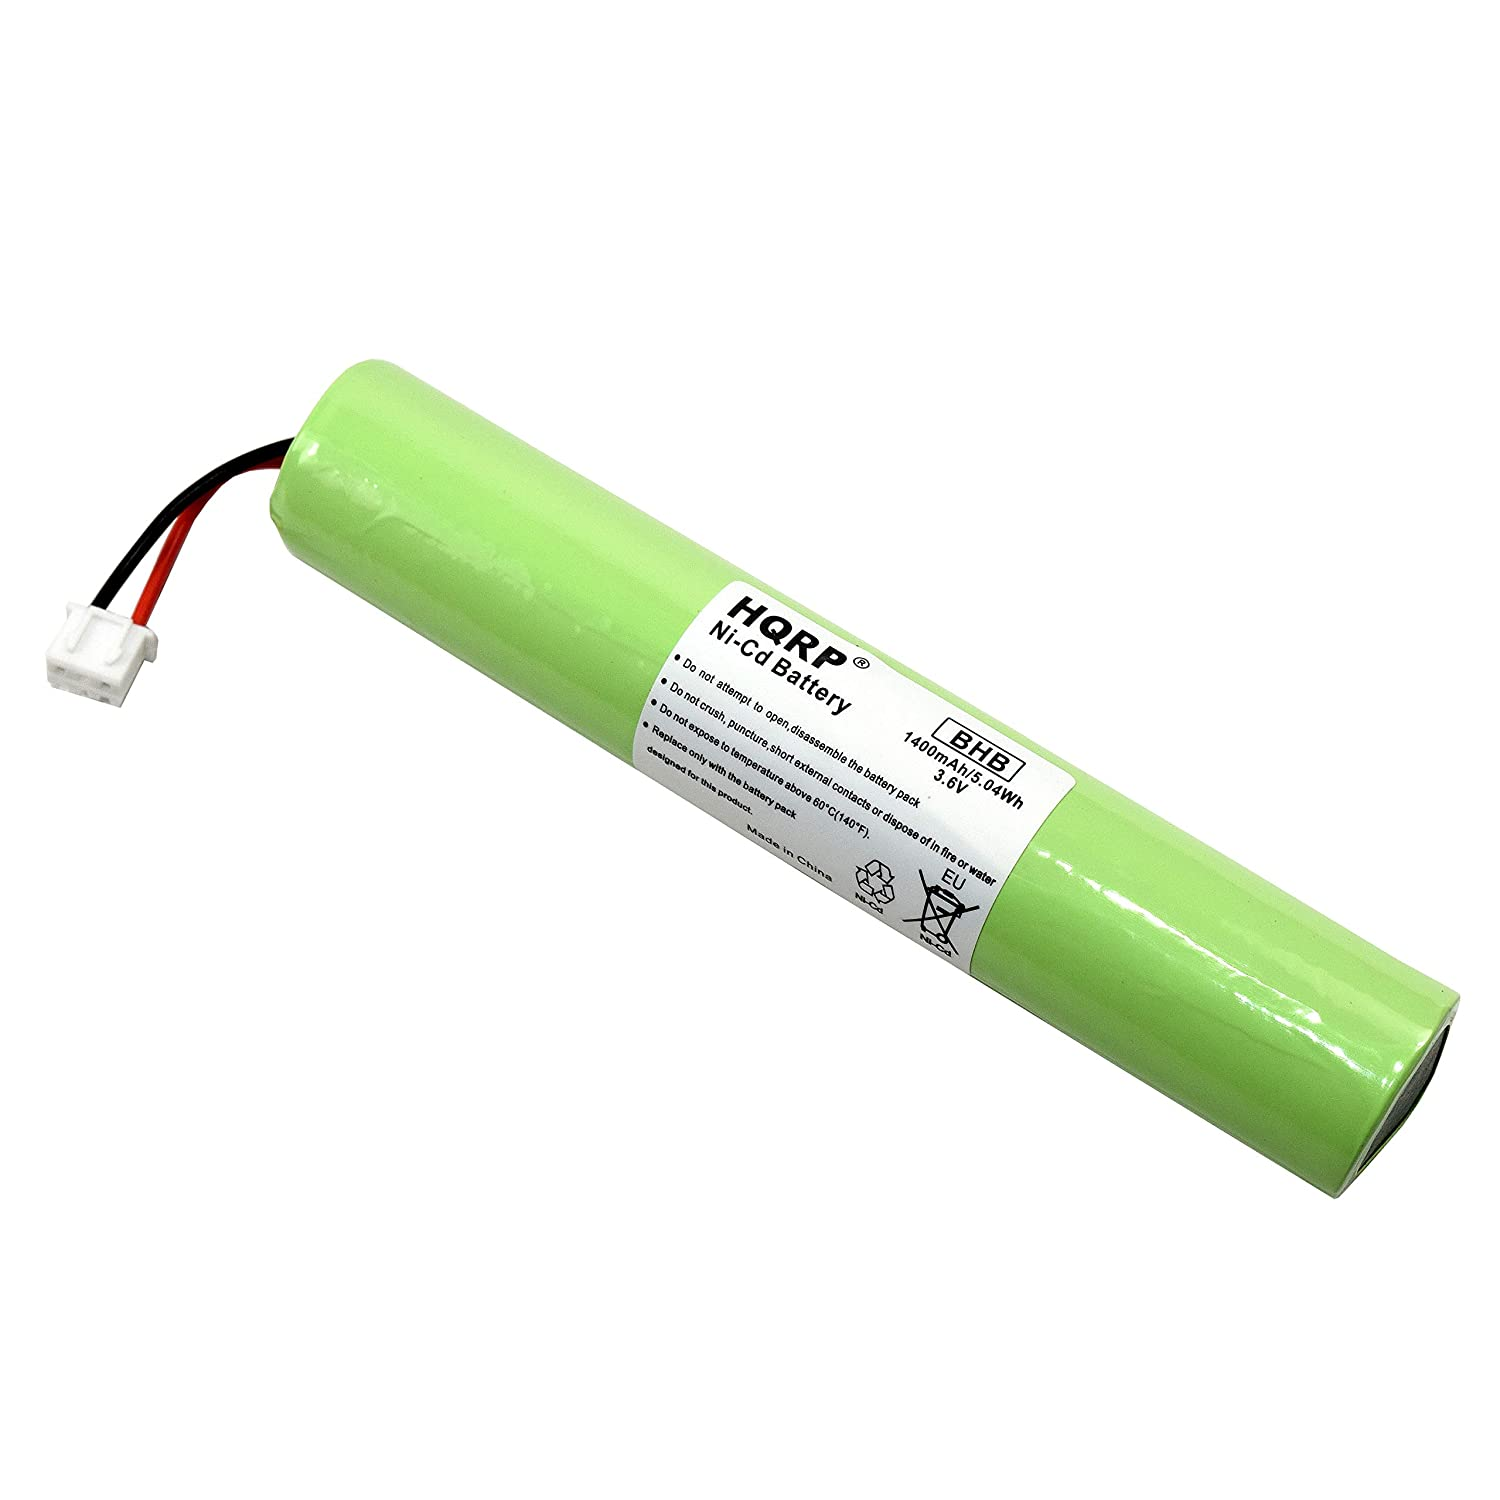 HQRP Battery for Hurricane Spin Scrubber Brush Cleaner Mop Spin-Scrubber Bathtub + Coaster 887774411051801